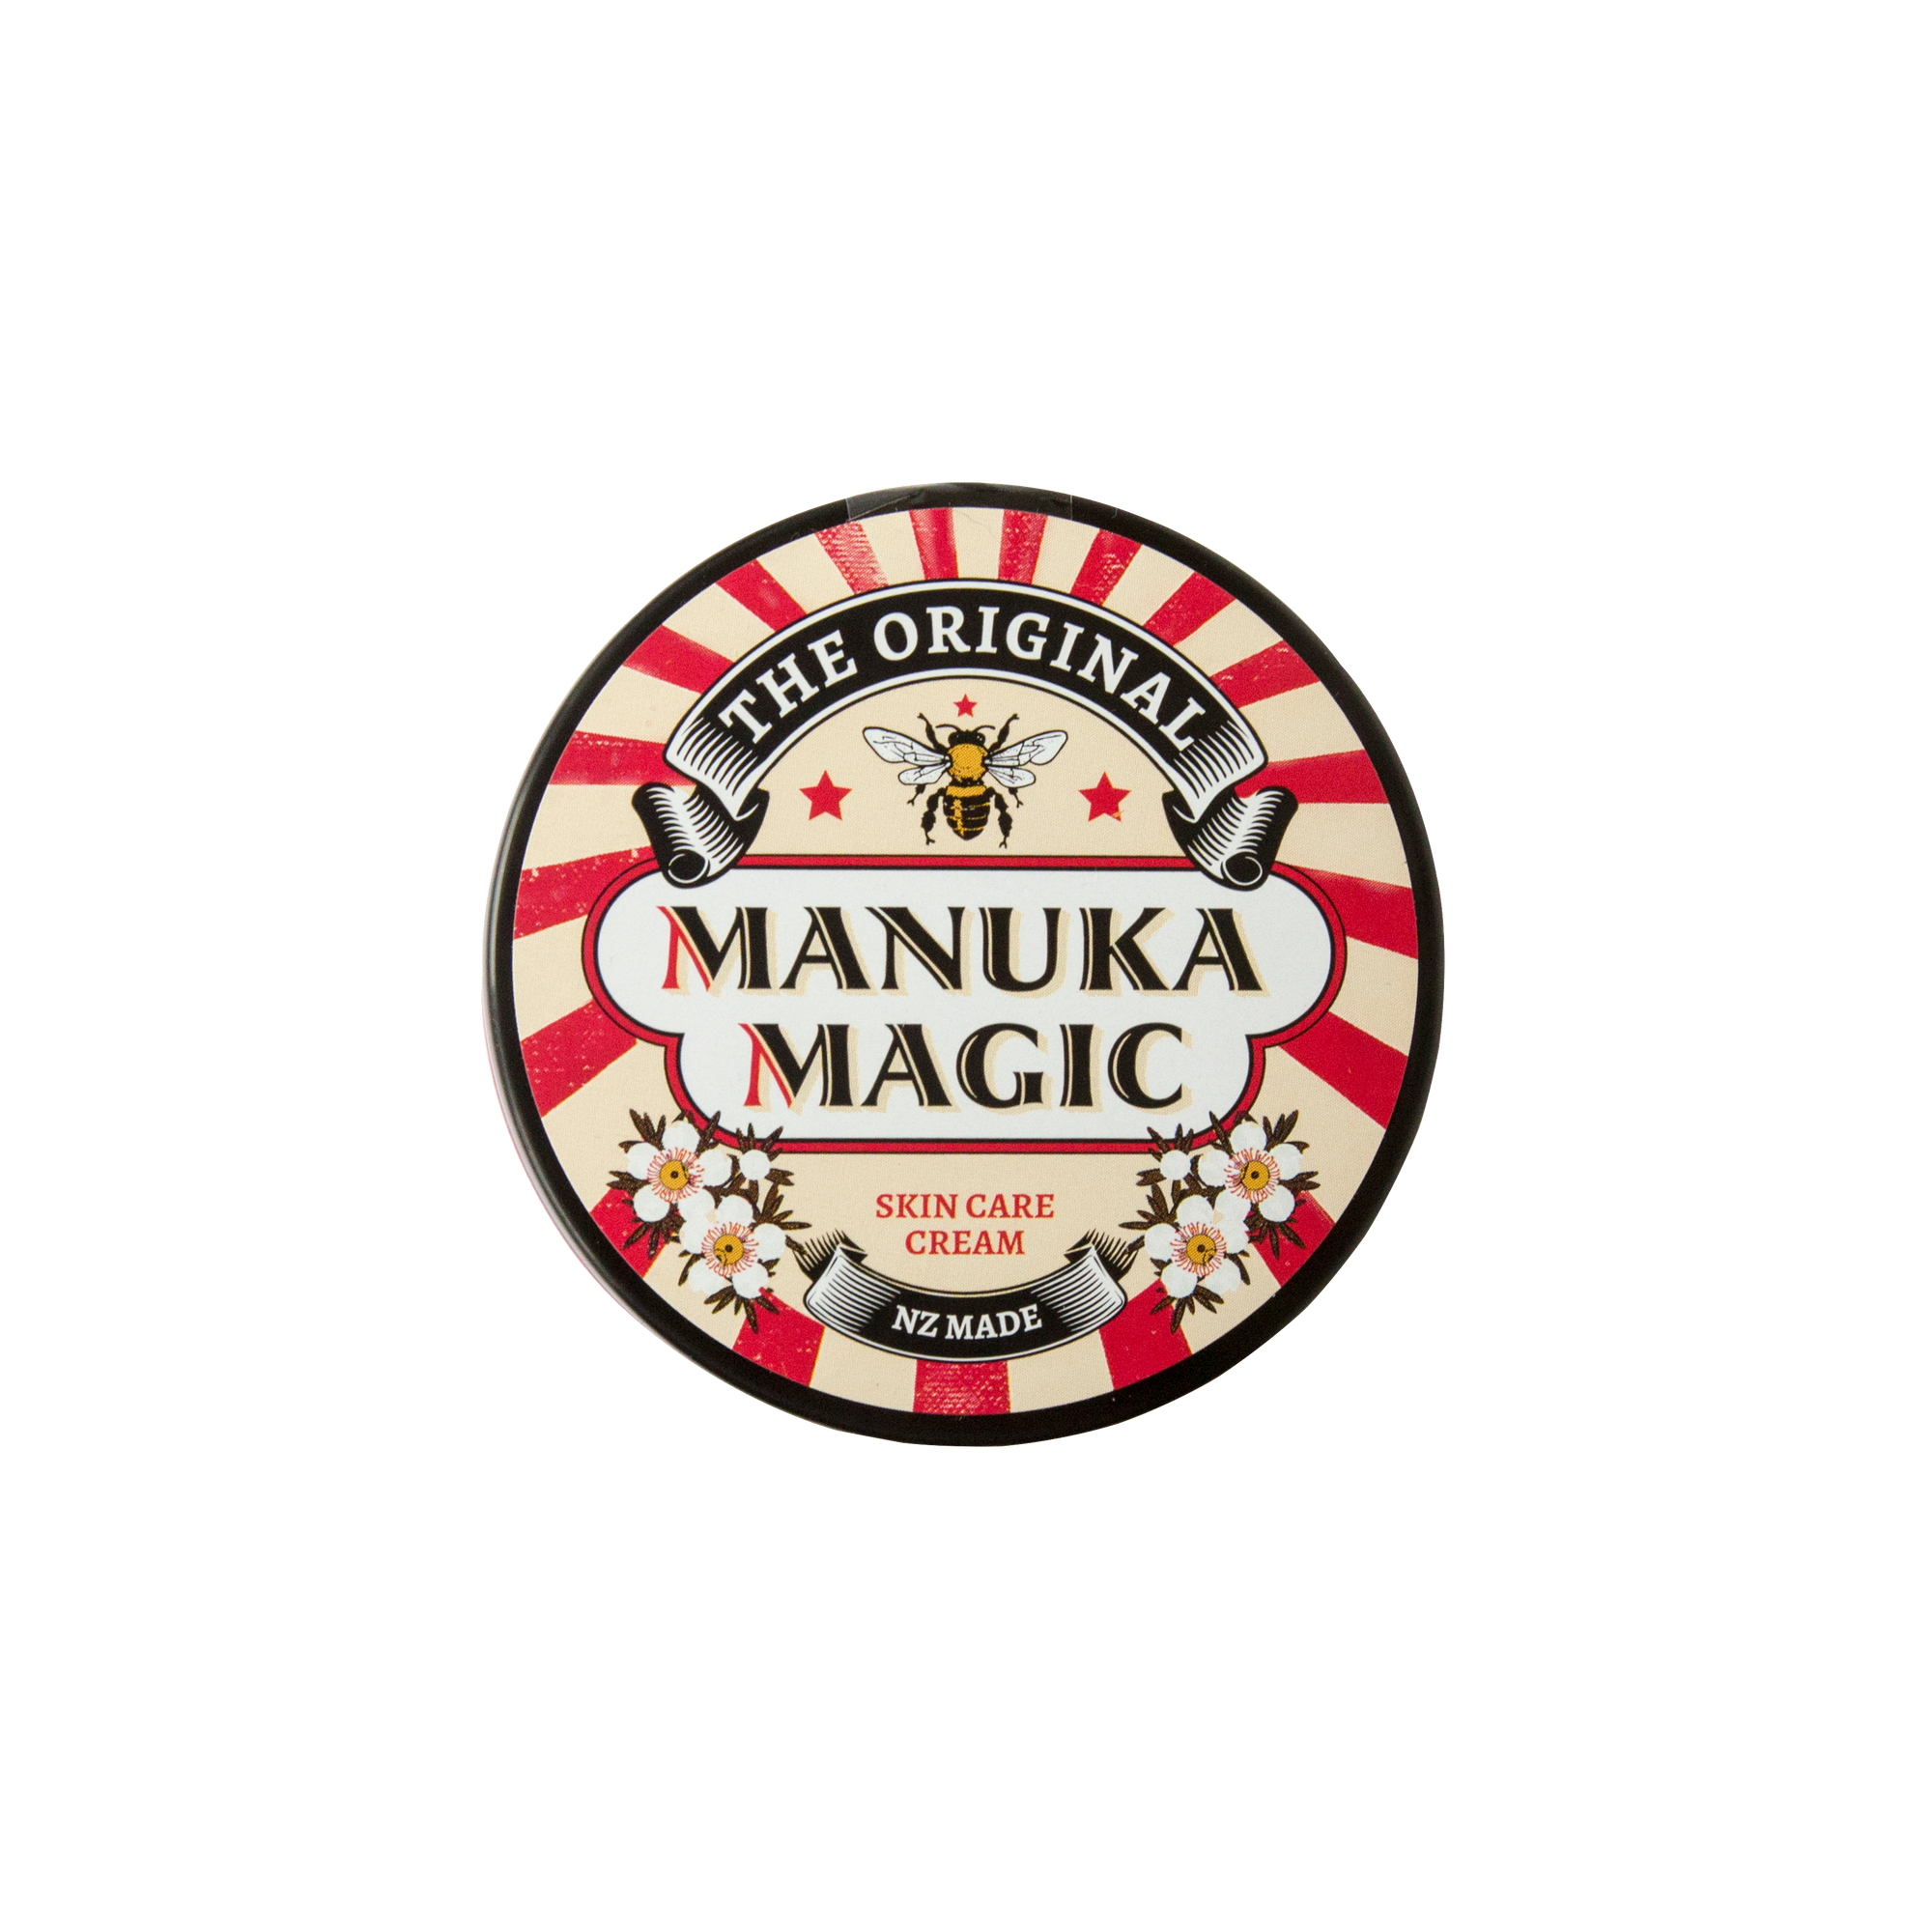 Manuka Magic Skincare Cream - Face & Body | The Honey Collection